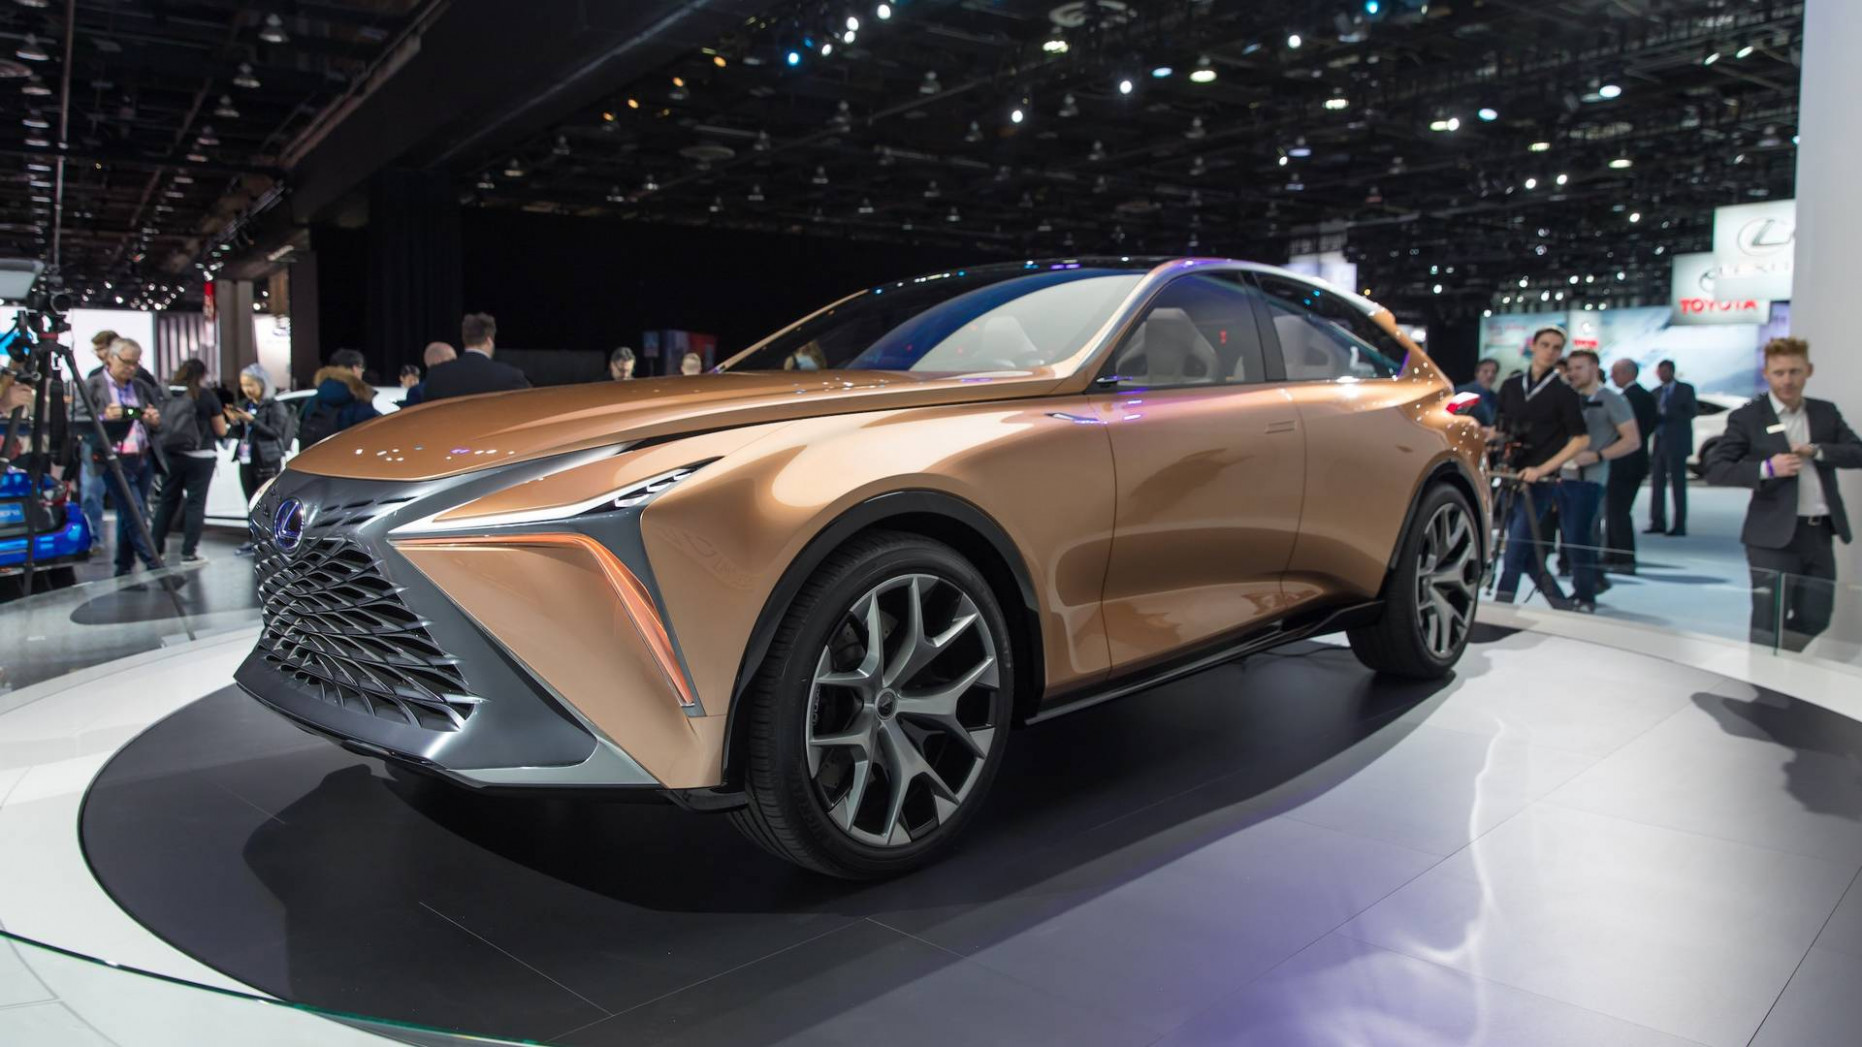 Ratings When Will The 2022 Lexus Be Available